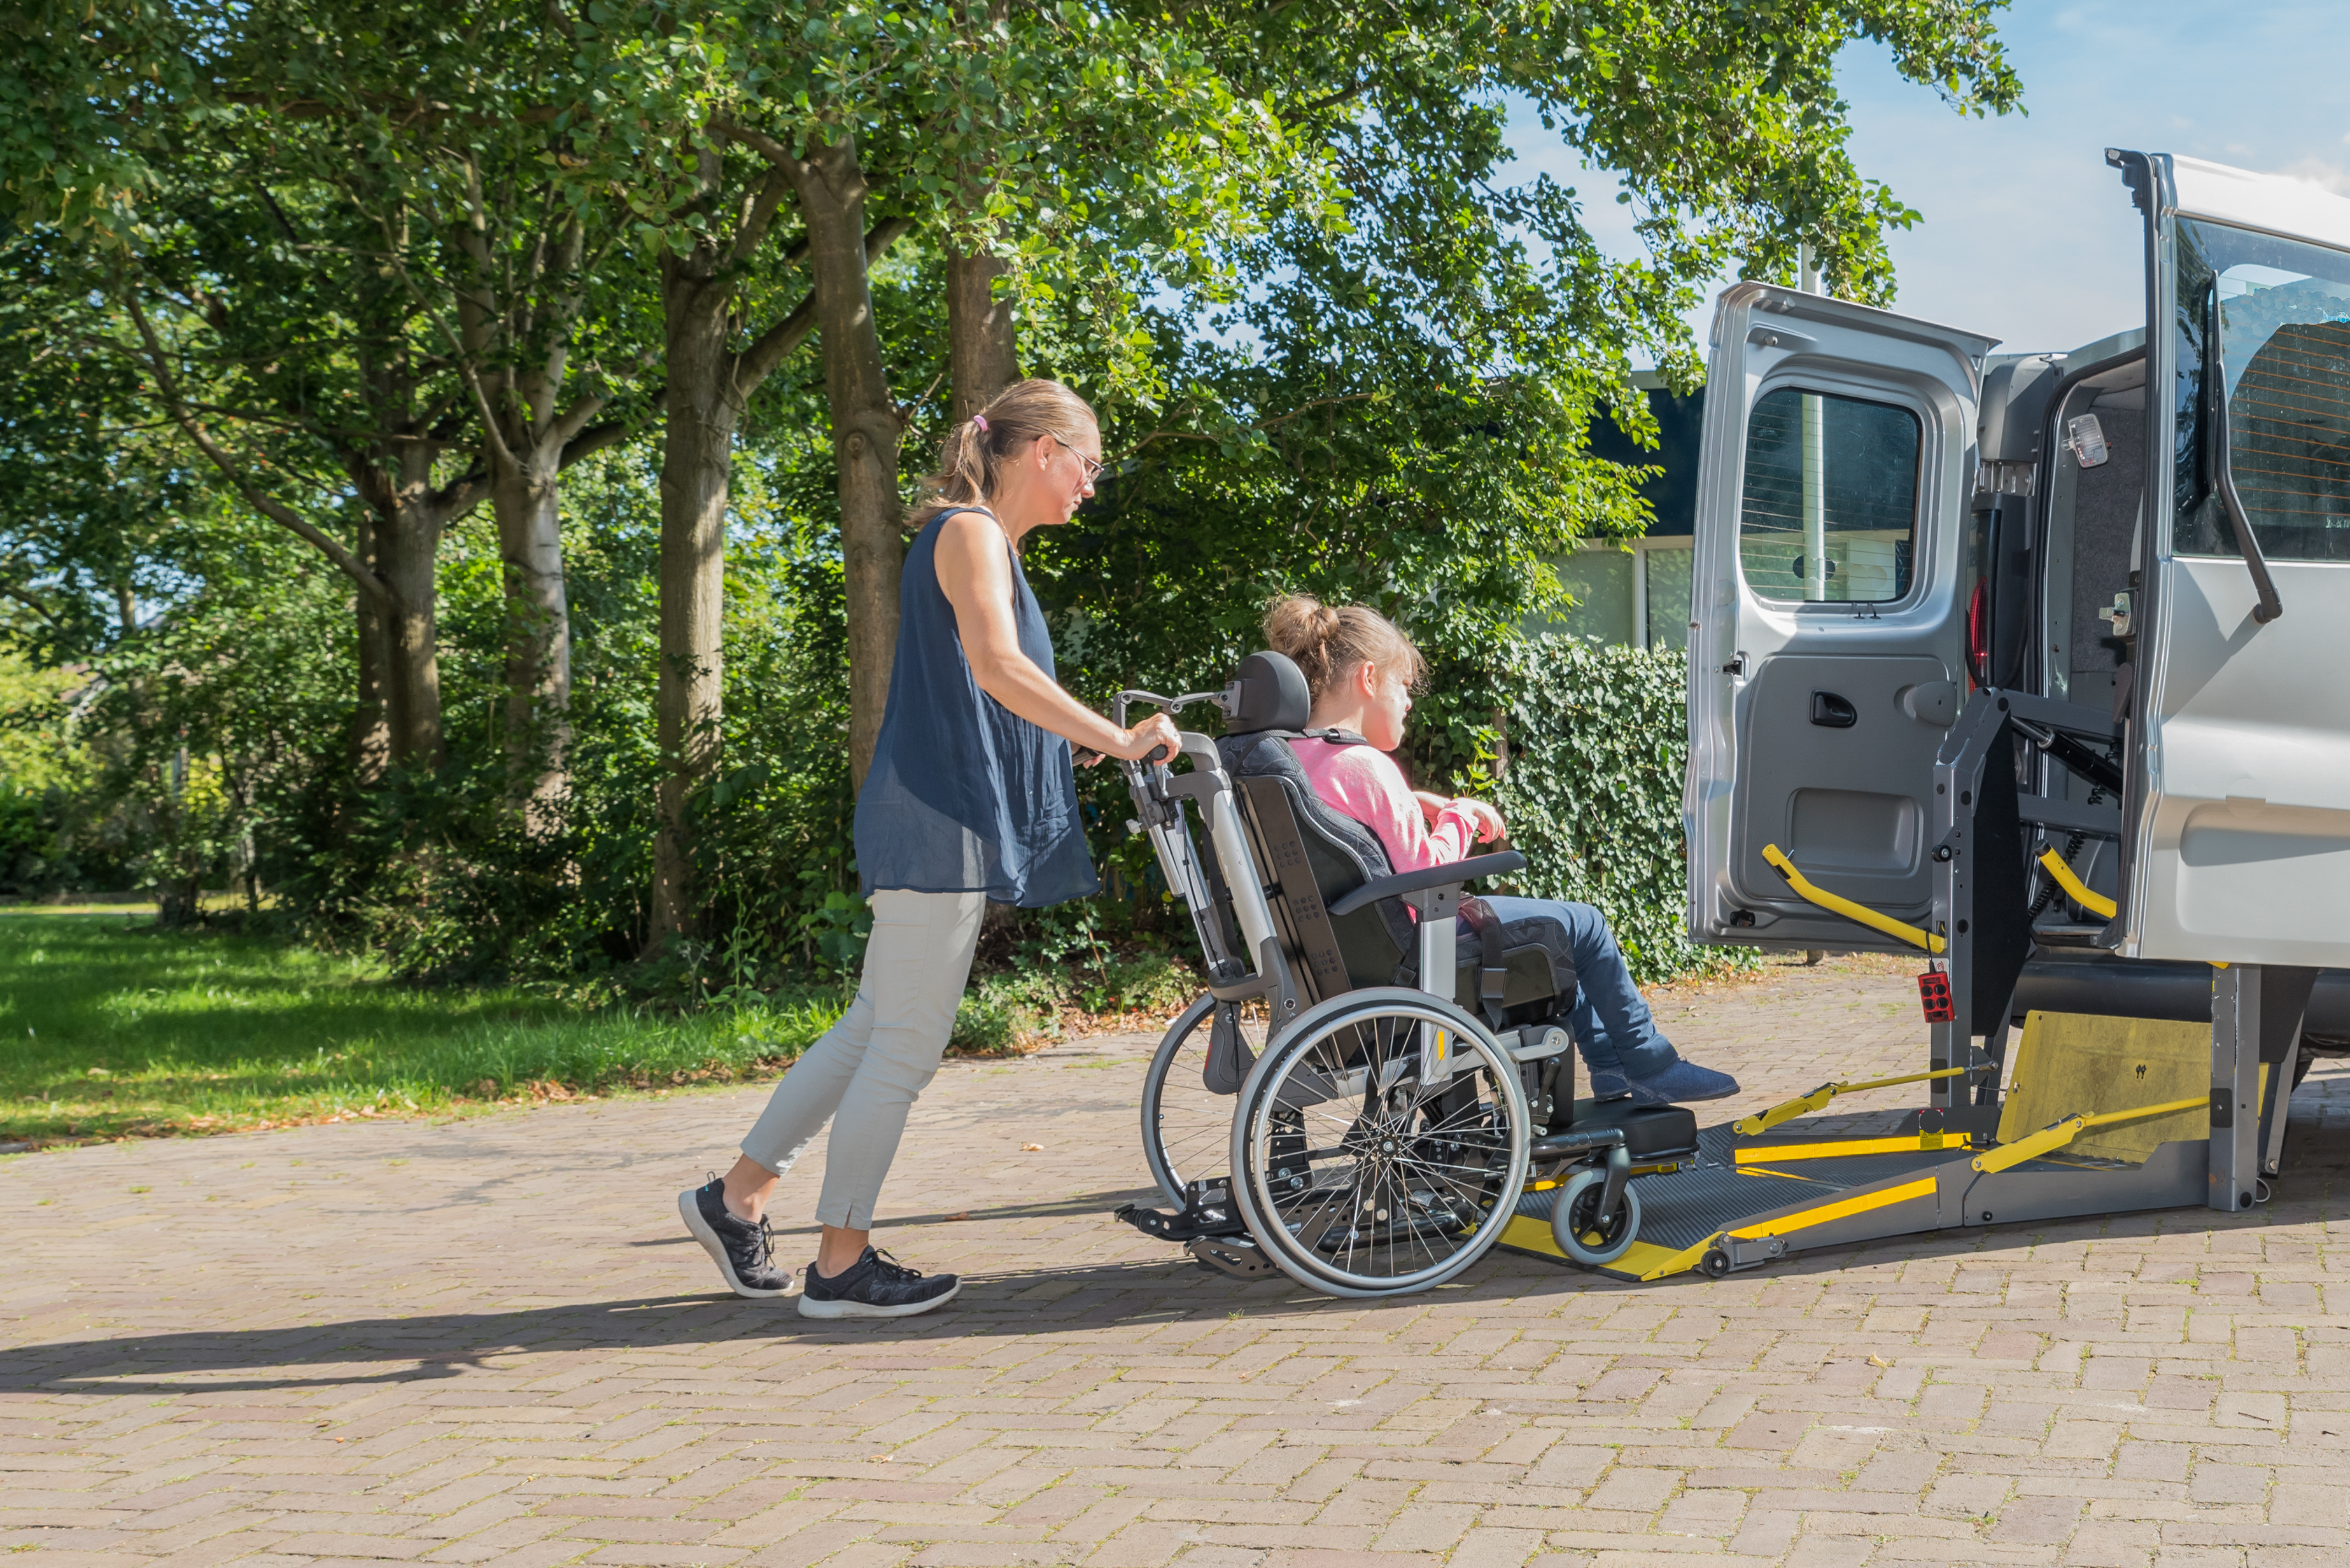 Vehicle adaption for wheelchair access